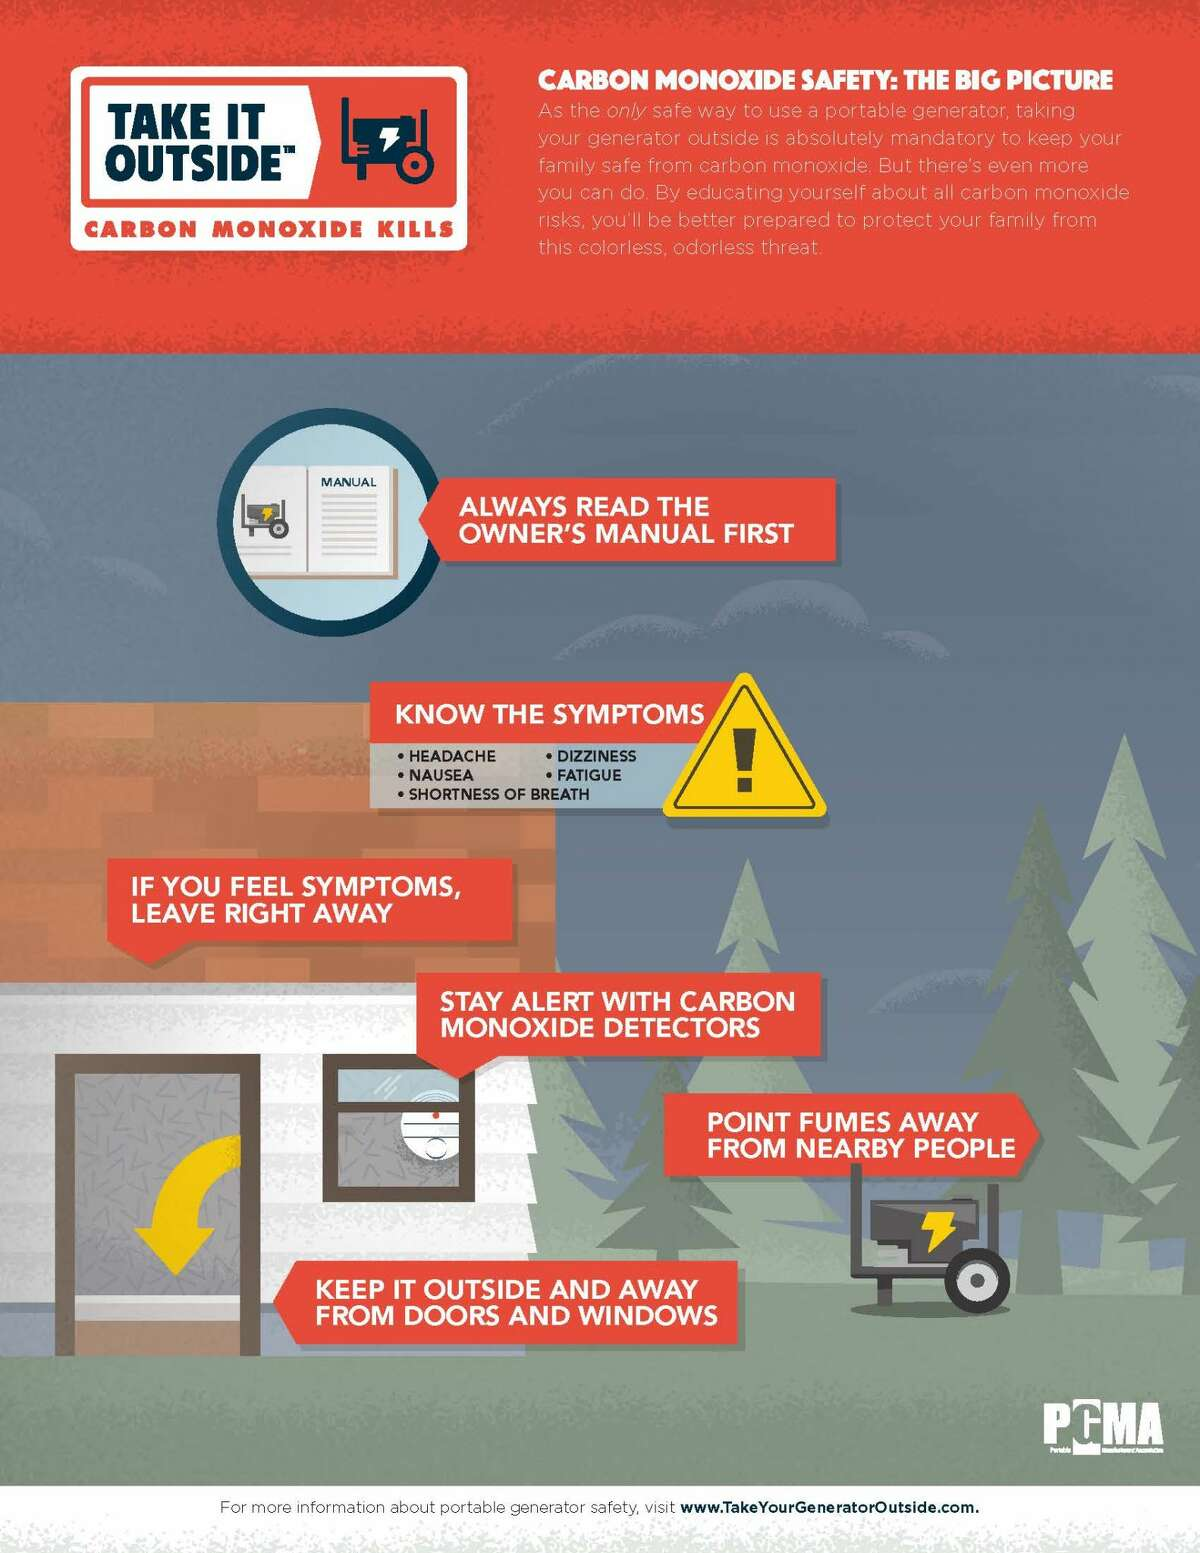 Hurricane season has officially started. The backup-power experts at Generac have offered tips on power alternatives, generator safety and unique recipes.